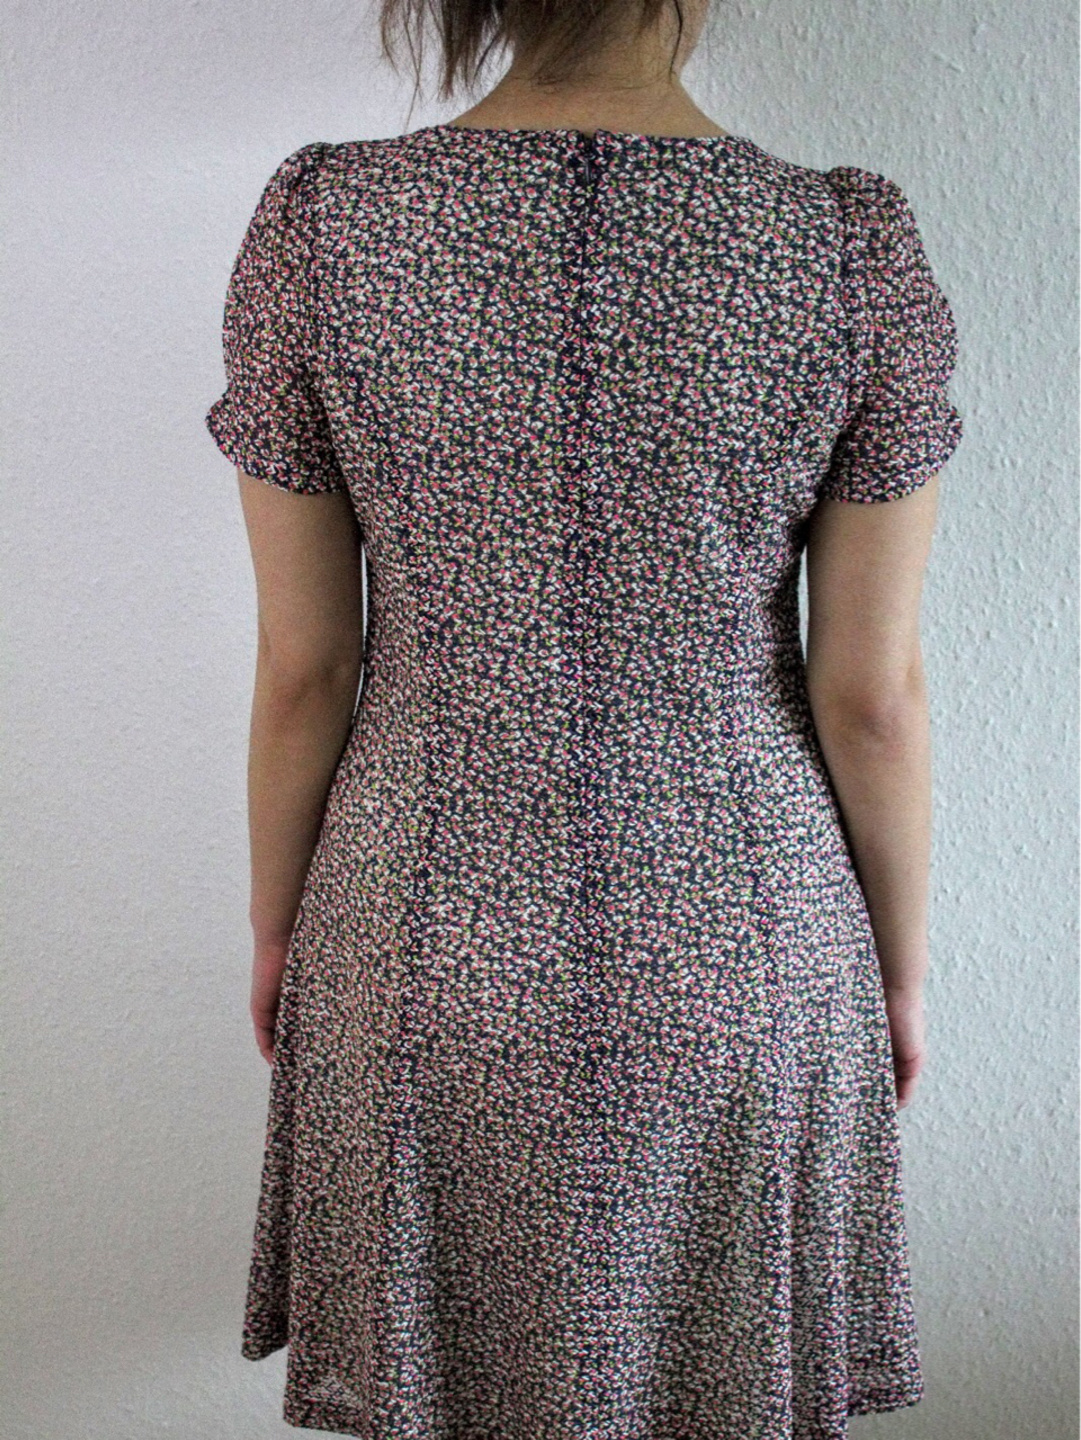 Women's dresses - VINTAGE photo 2